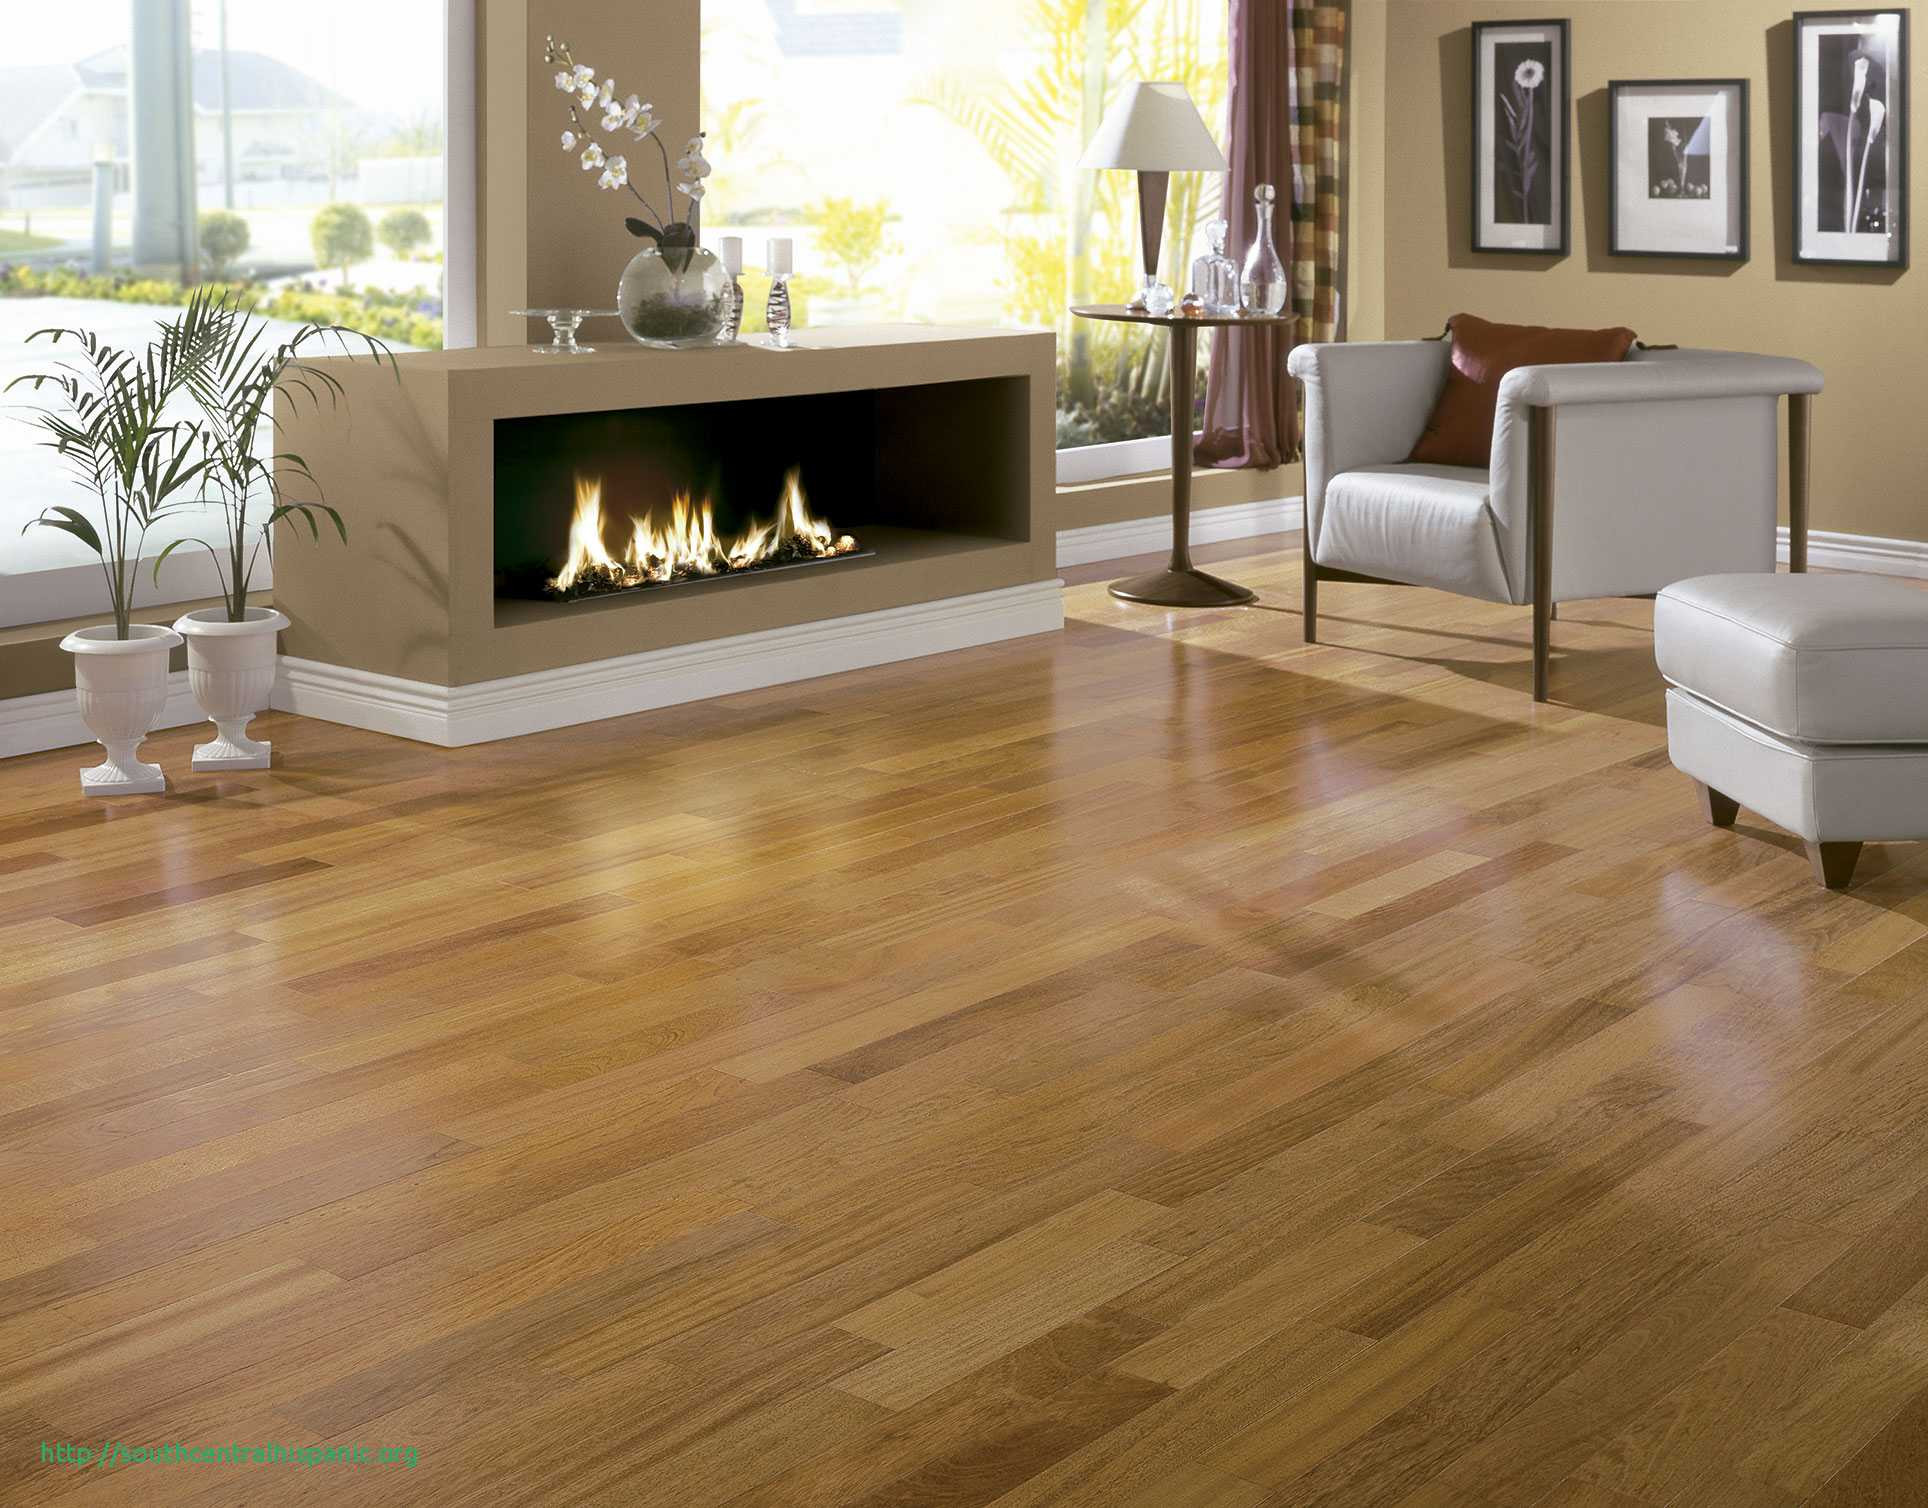 hardwood floor steam cleaners consumer reports of 15 impressionnant best wood floor color for small space ideas blog intended for best wood floor color for small space impressionnant engaging discount hardwood flooring 5 where to buy